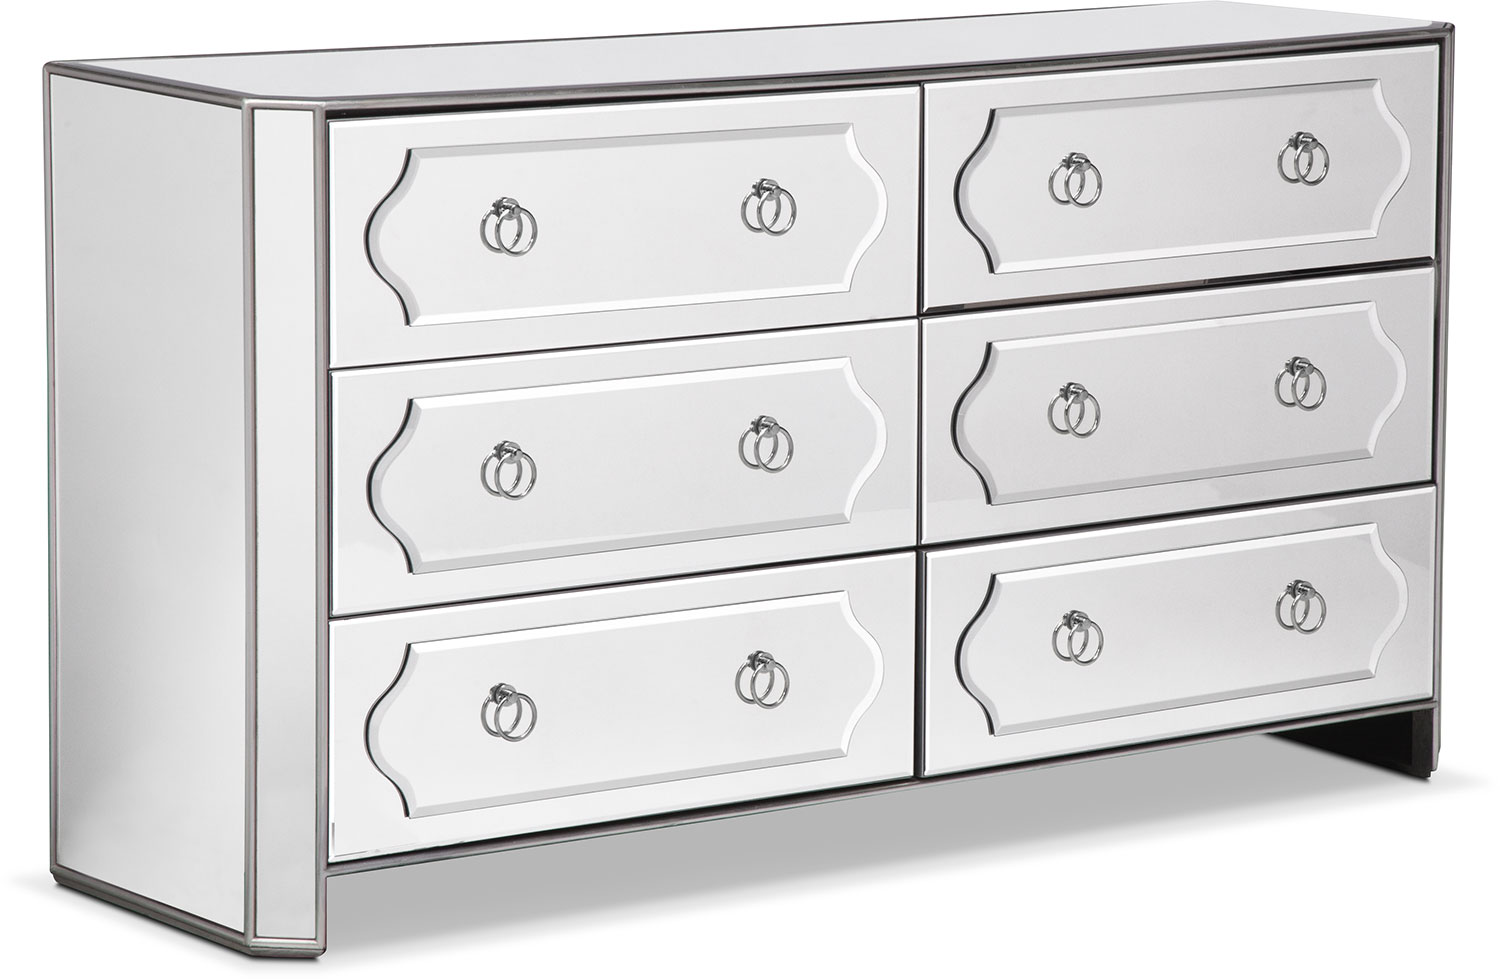 Harlow Dresser Mirrored Value City Furniture And Mattresses